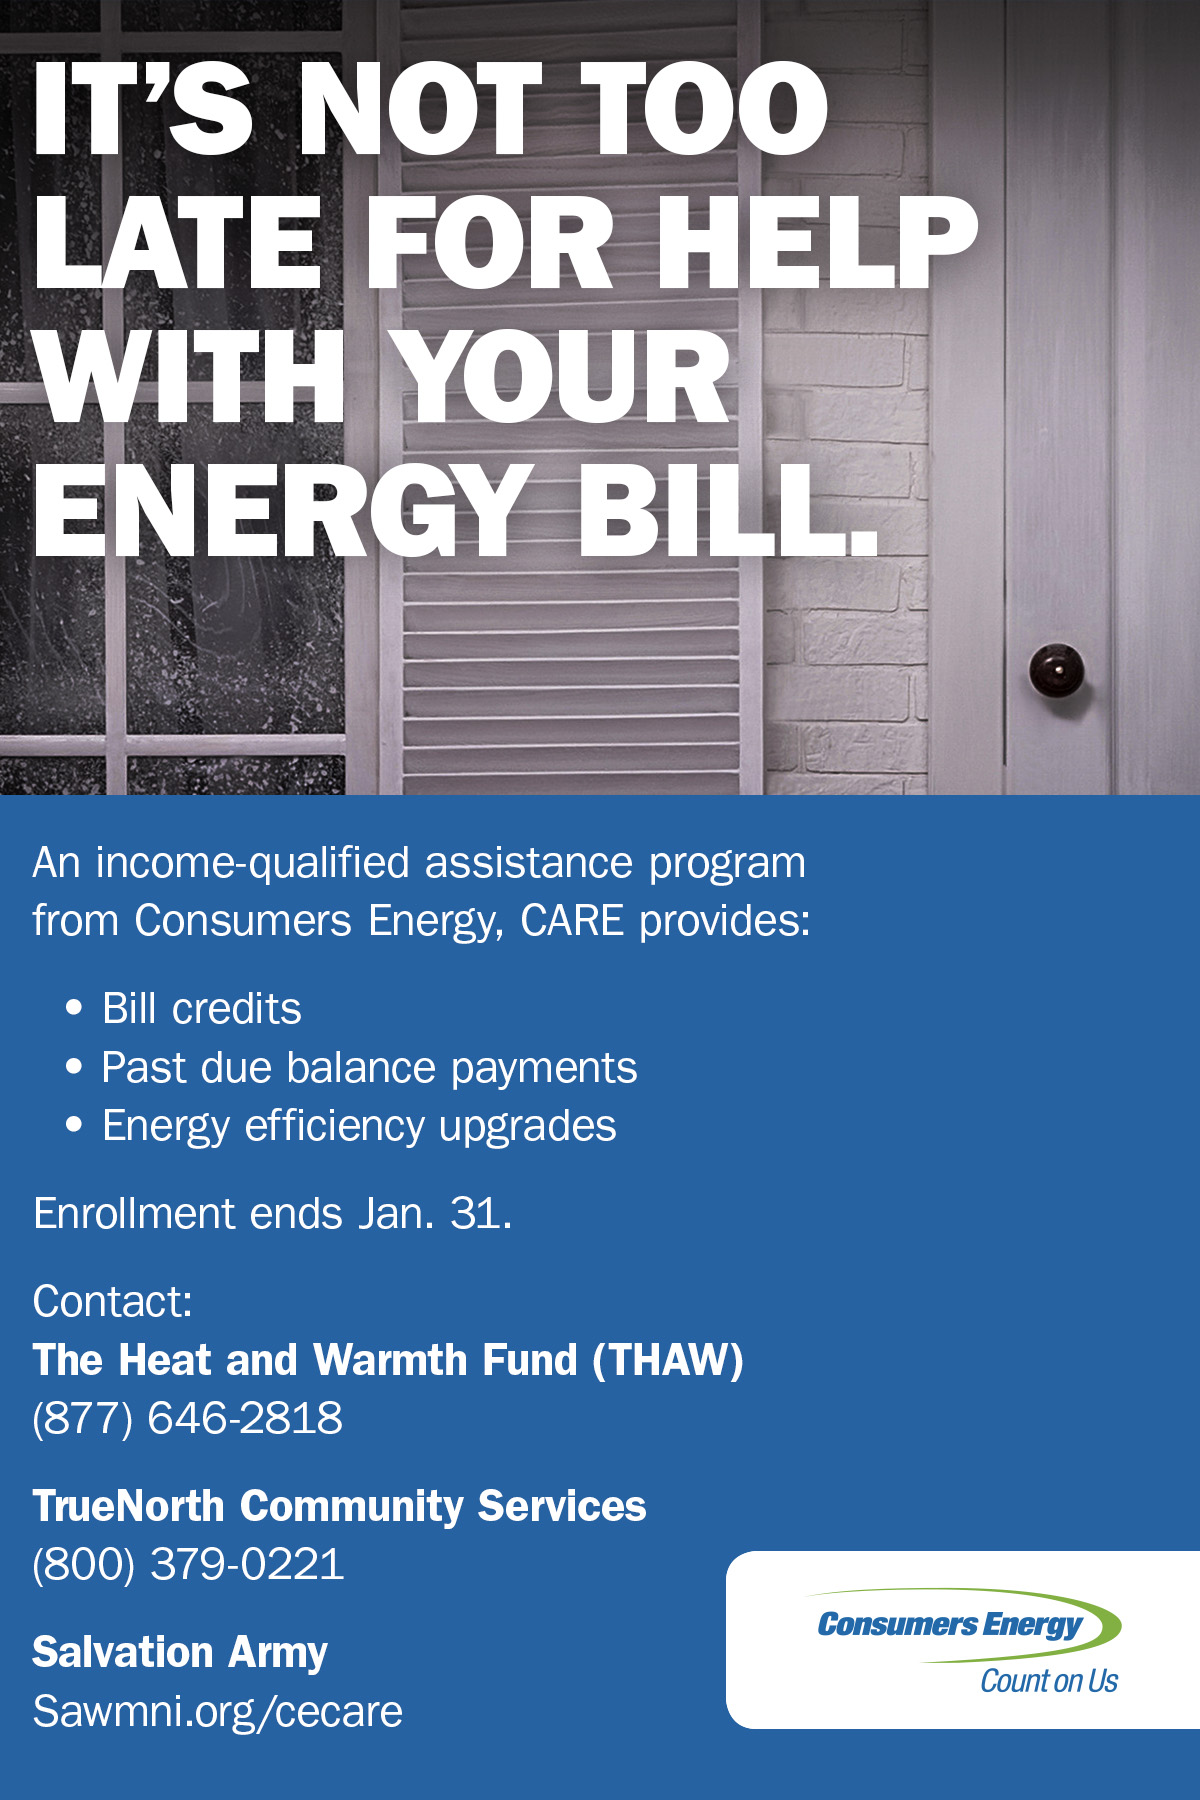 new consumers energy program helps income qualified customers manage